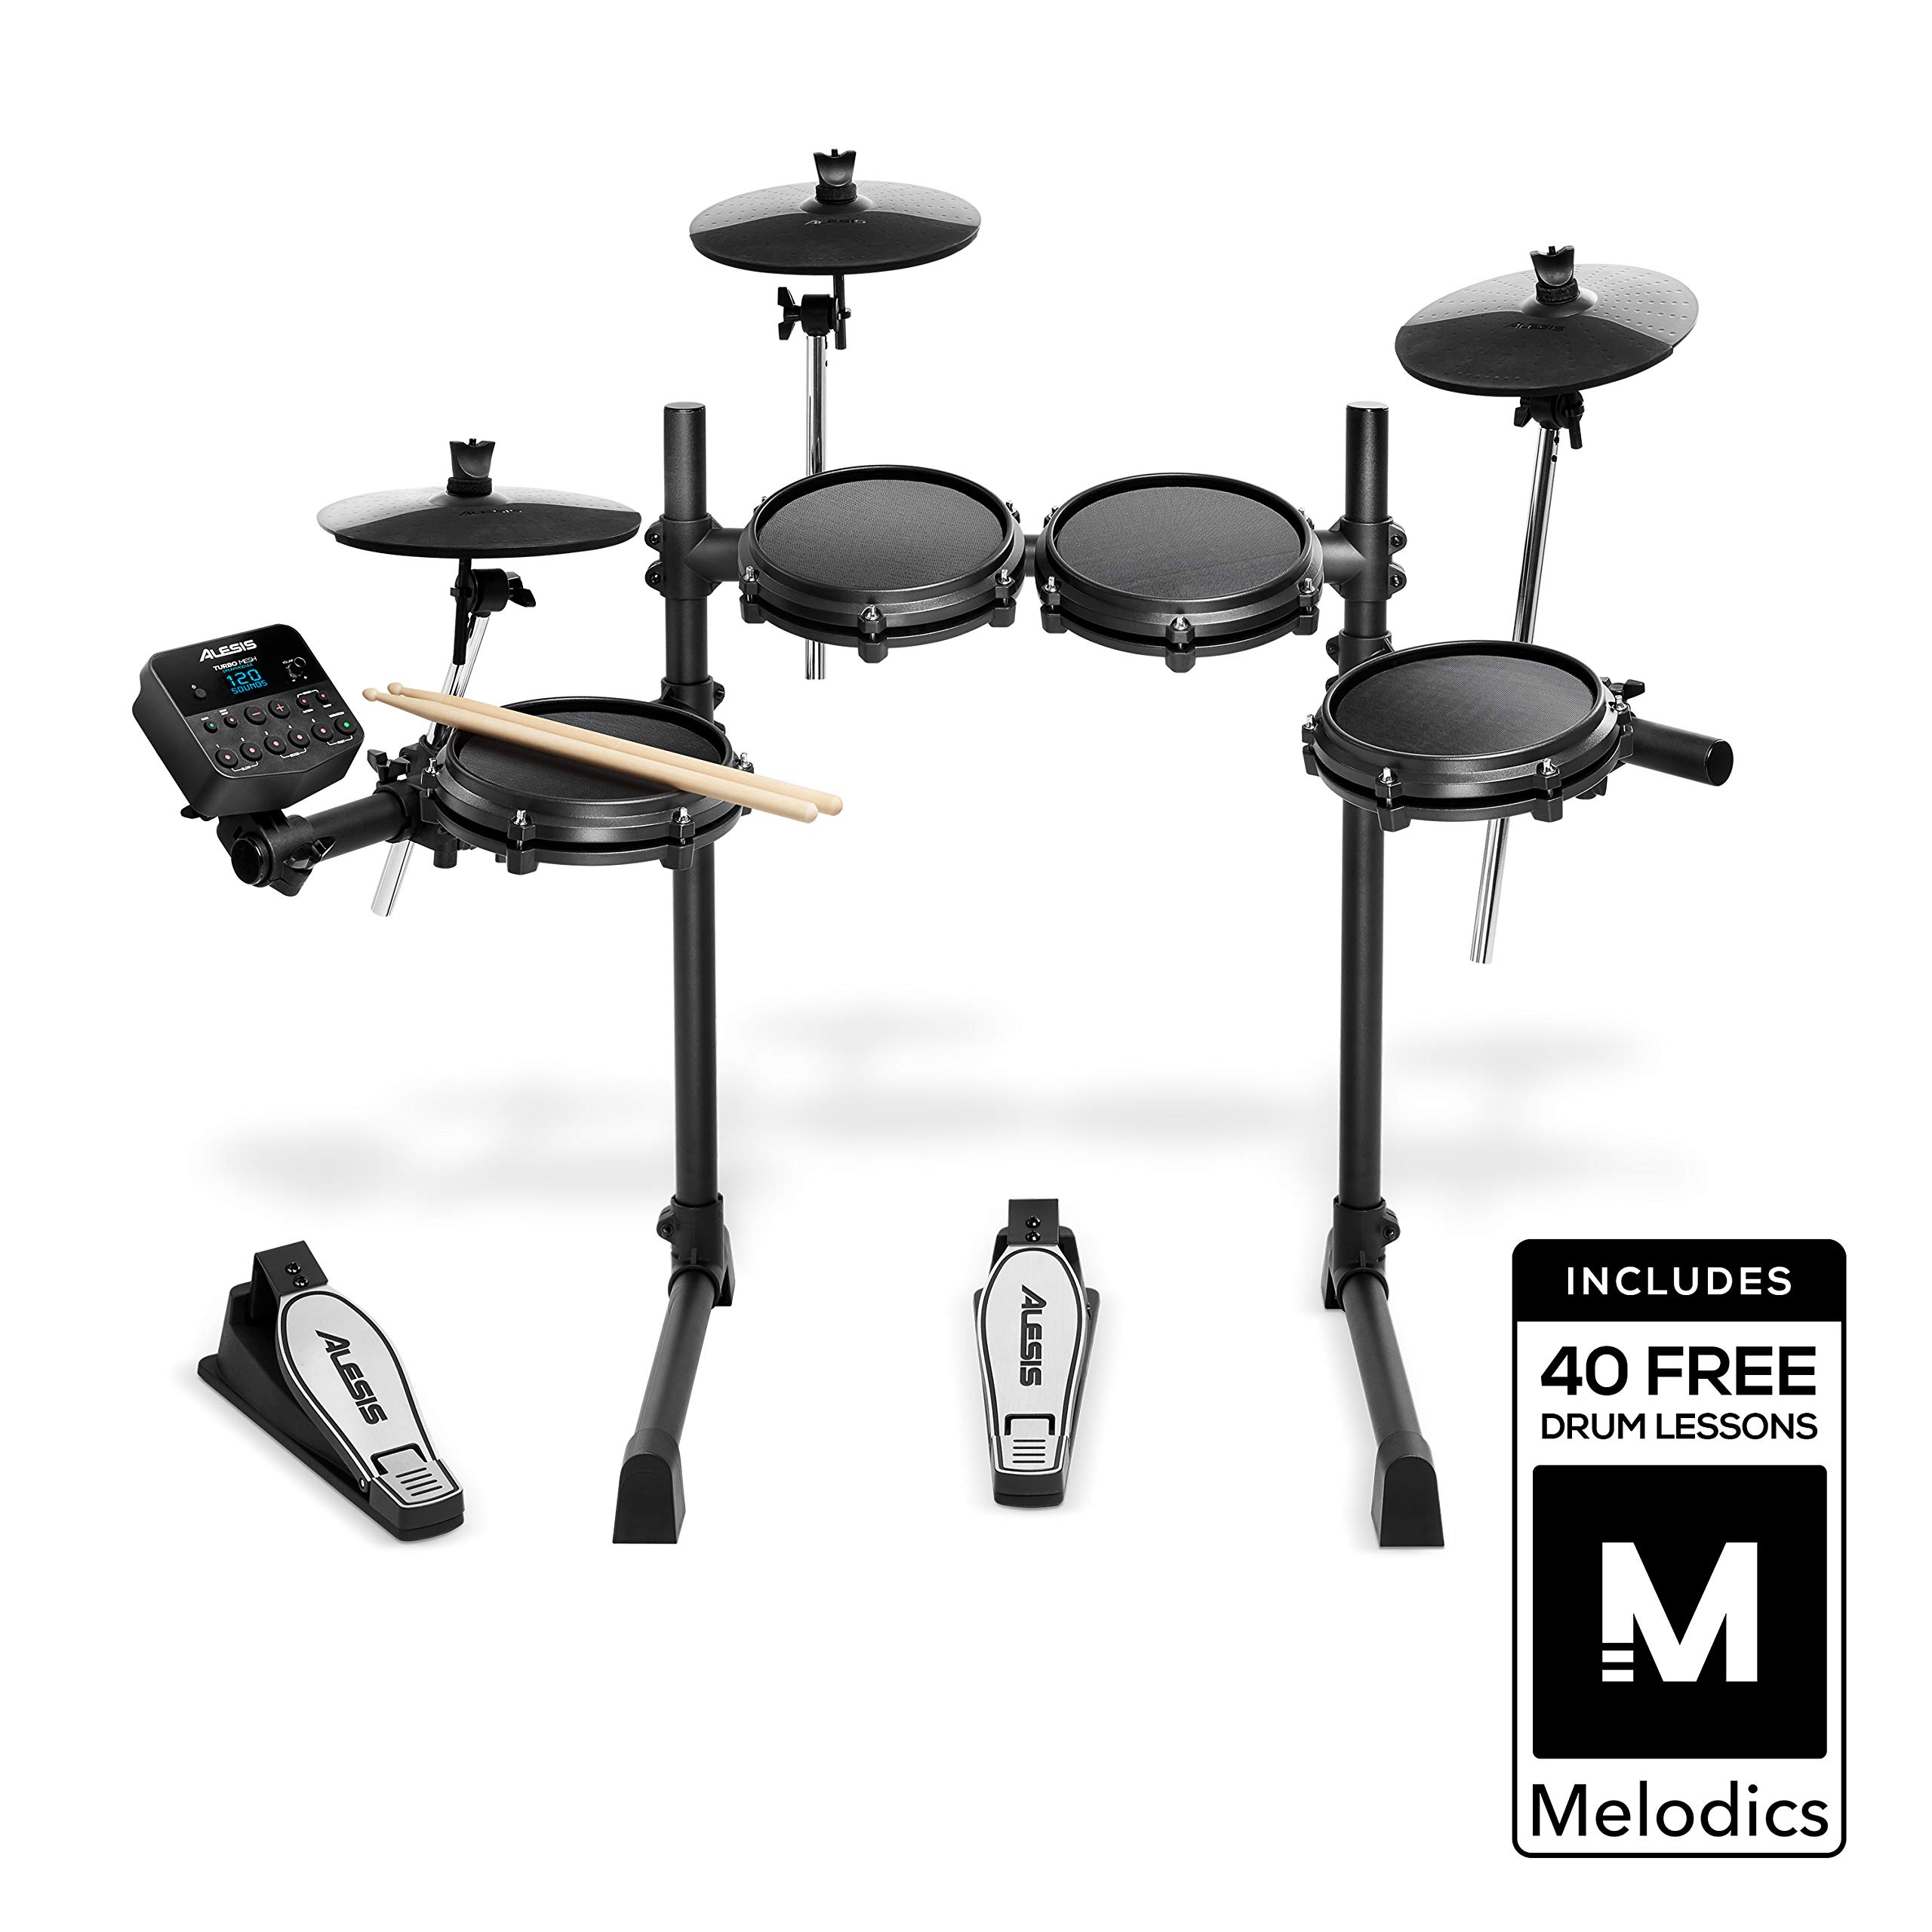 Alesis Drums Turbo Mesh Kit - Electronic Drum Kit With Mesh Heads, Super-Solid Aluminum Rack, 100+ Sounds, 30 Play-Along Tracks, Drum Sticks, Connection Cables, & Drum Key included. by Alesis